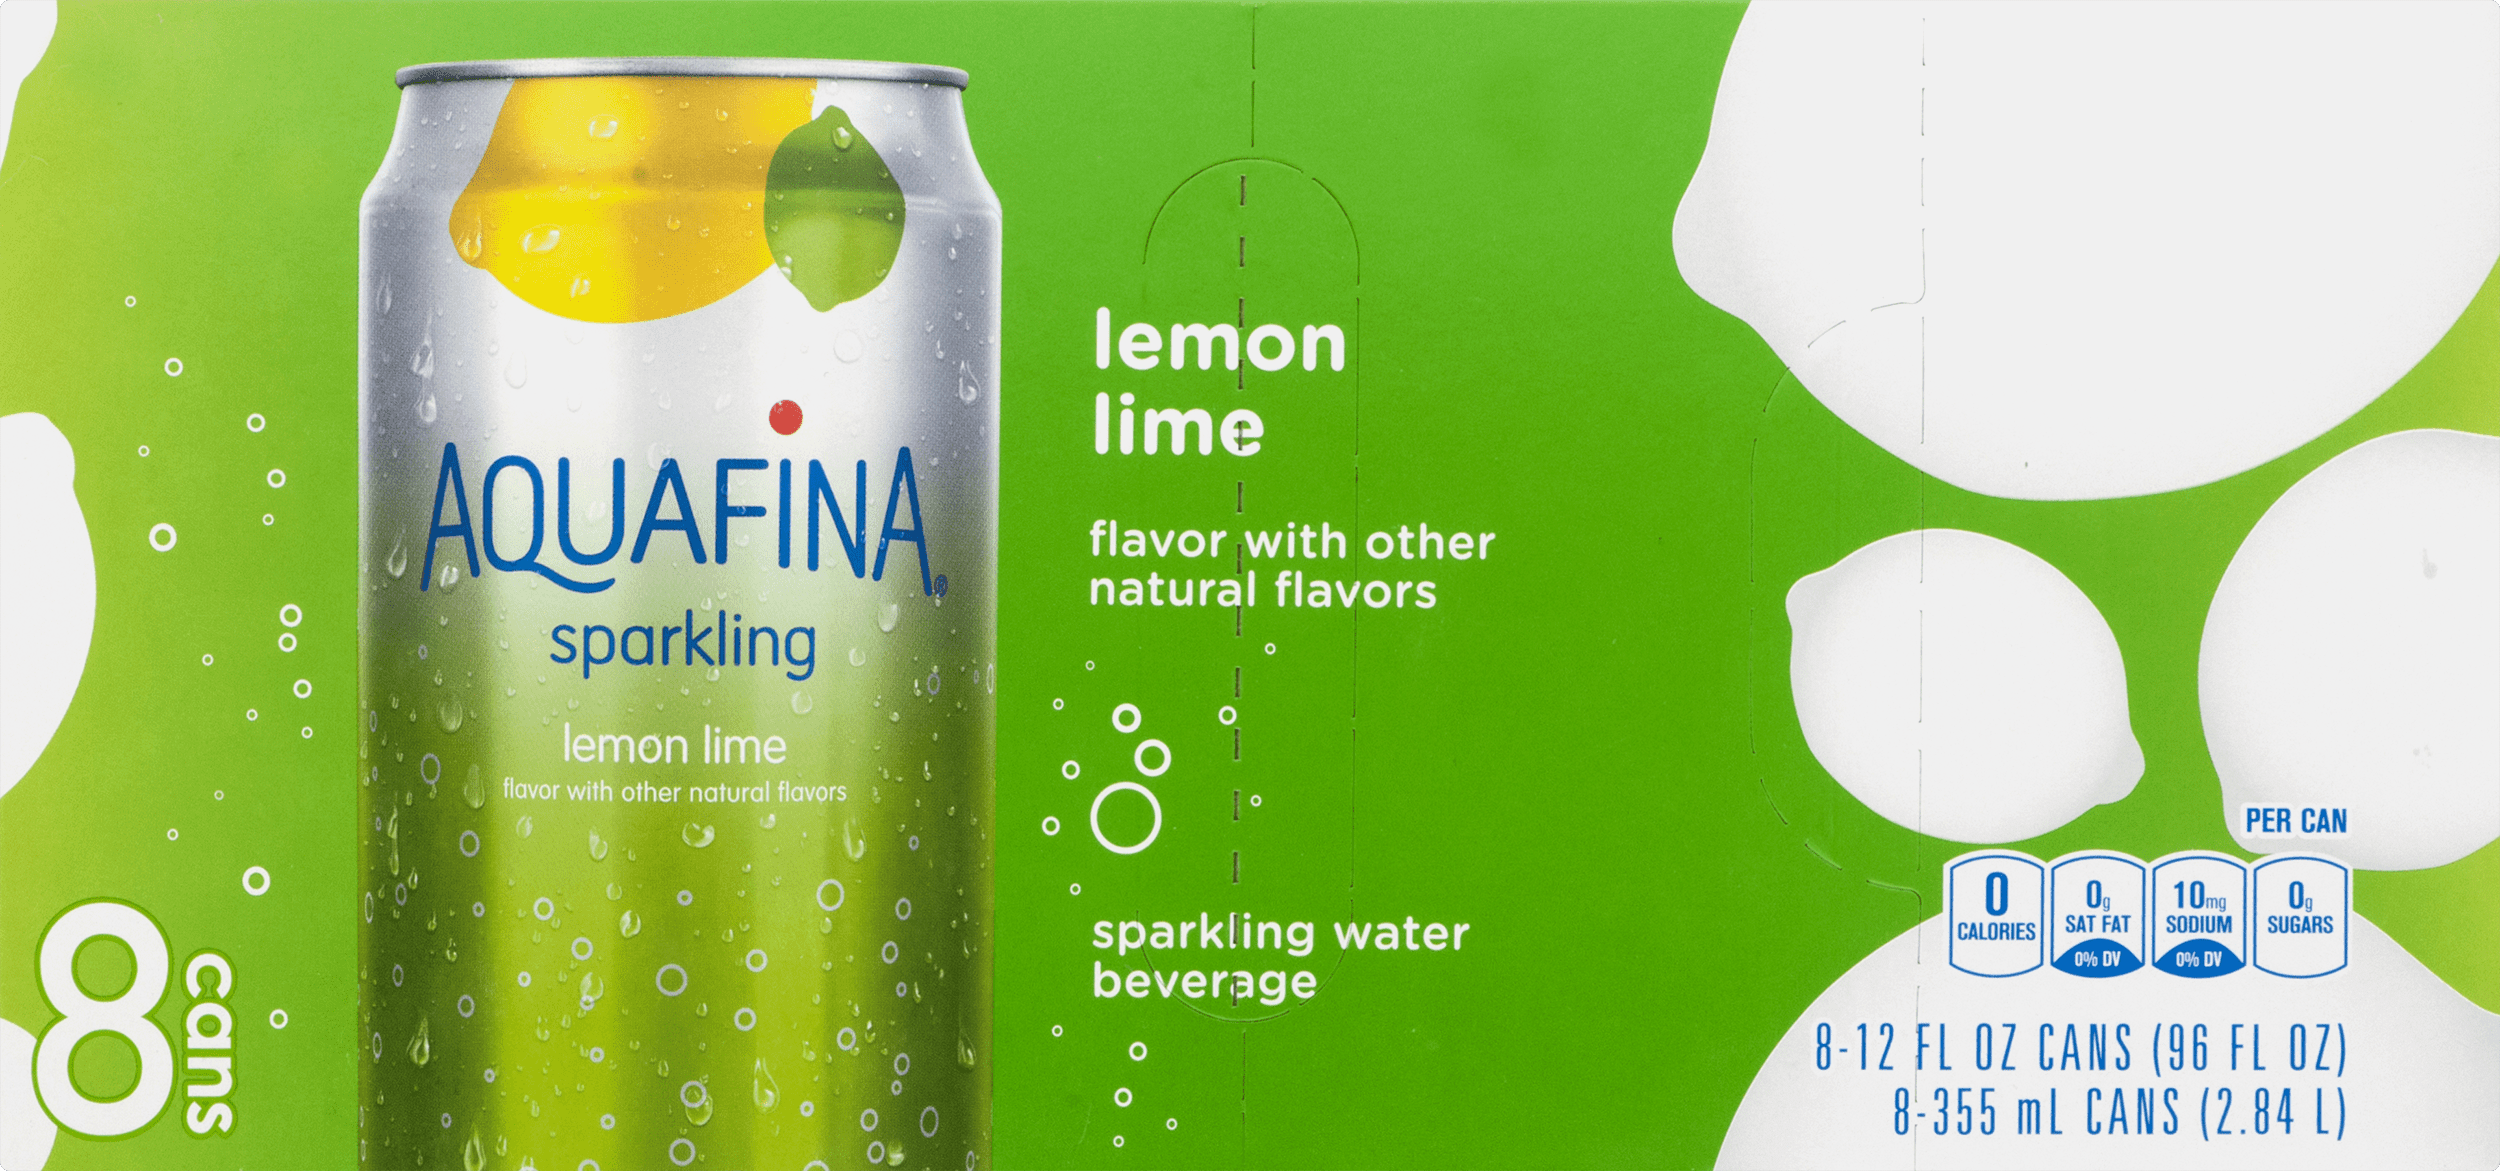 Aquafina Sparkling Water, Lemon Lime, 8 Count, 12 fl oz Cans by Pepsico